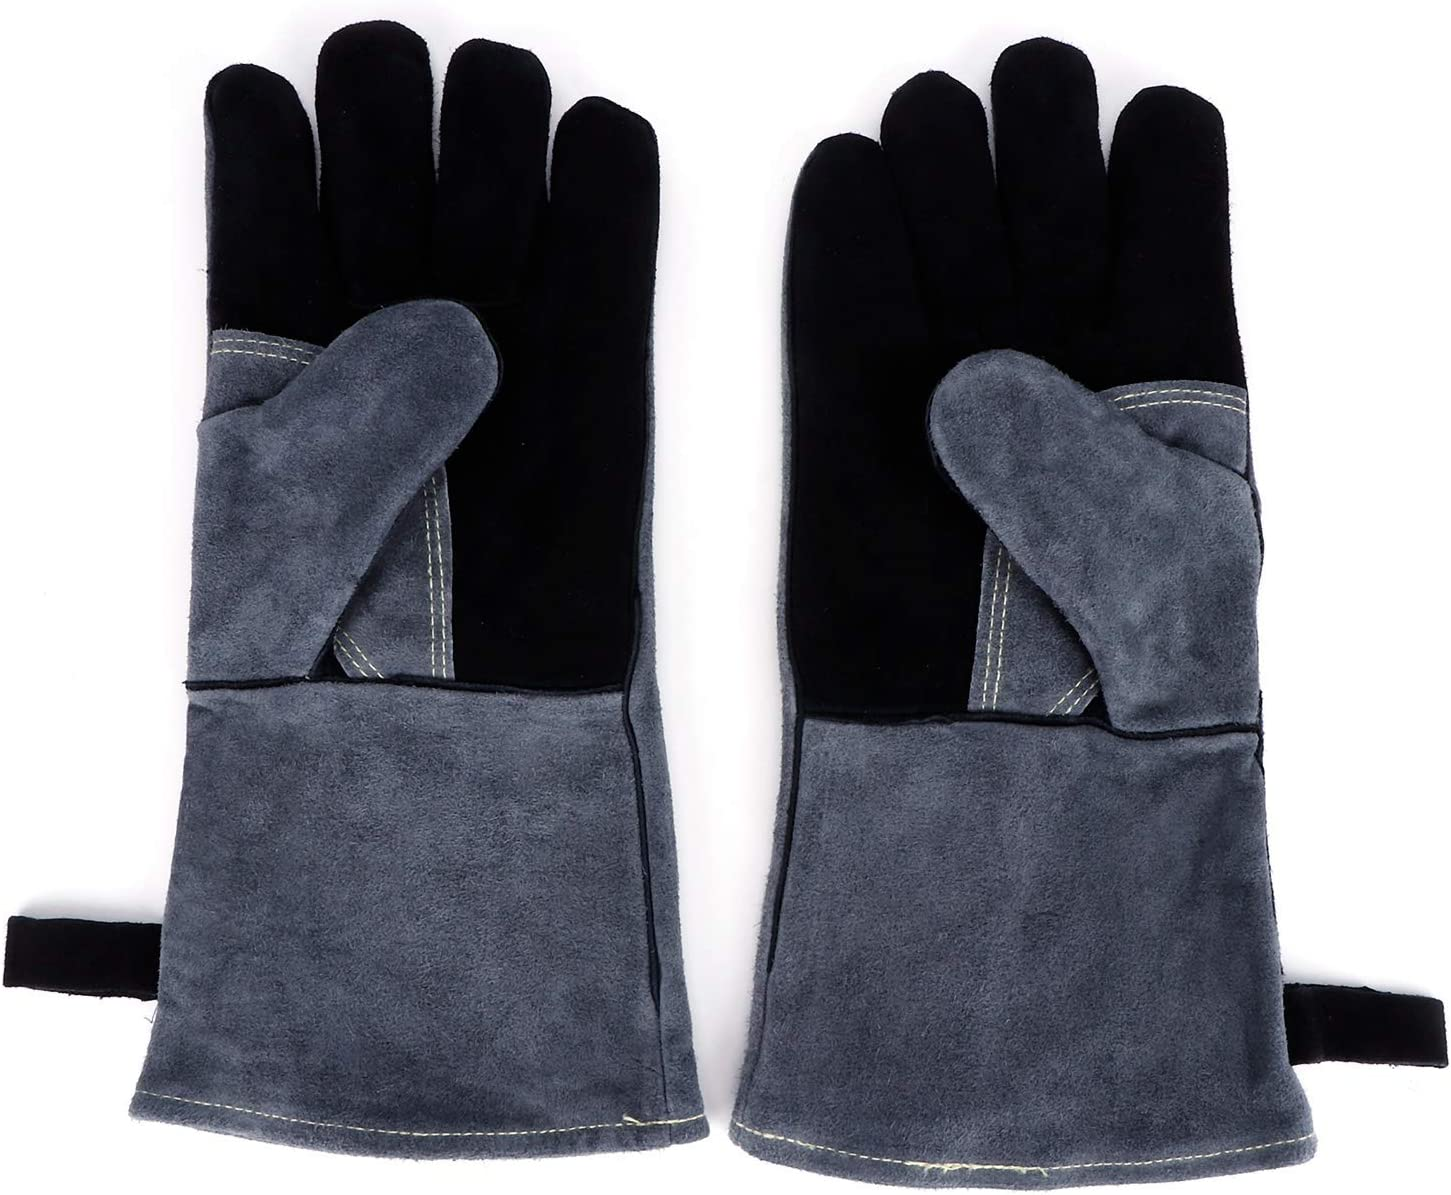 Import Hineges Leather Forged Ranking TOP6 Welding Gloves Heat fire Resistant Gri